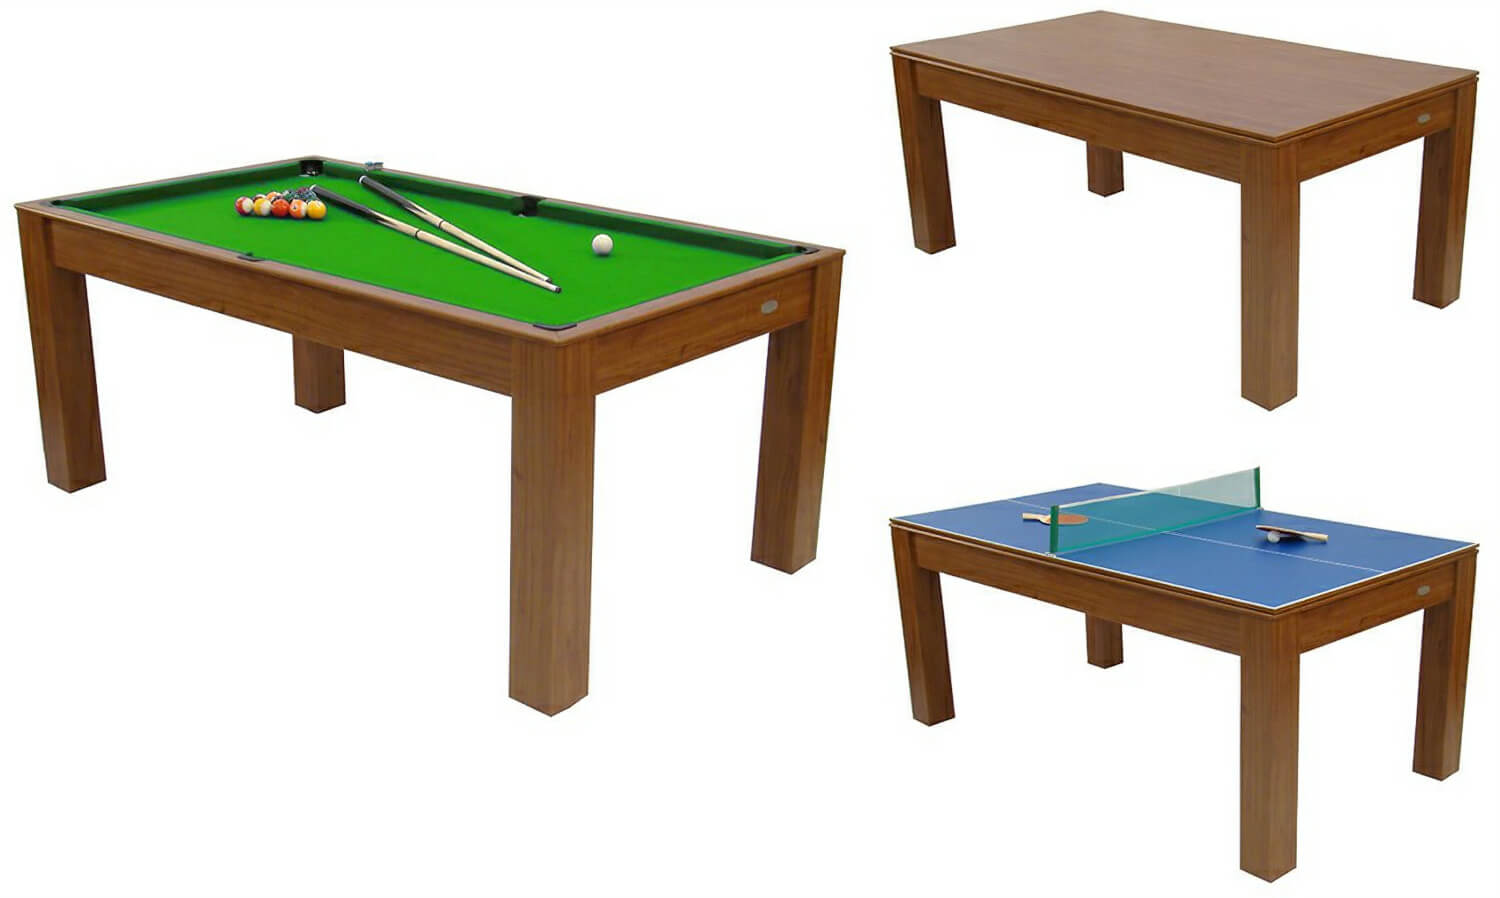 Gamesson Mars Combo 6 Foot Multi Games Table